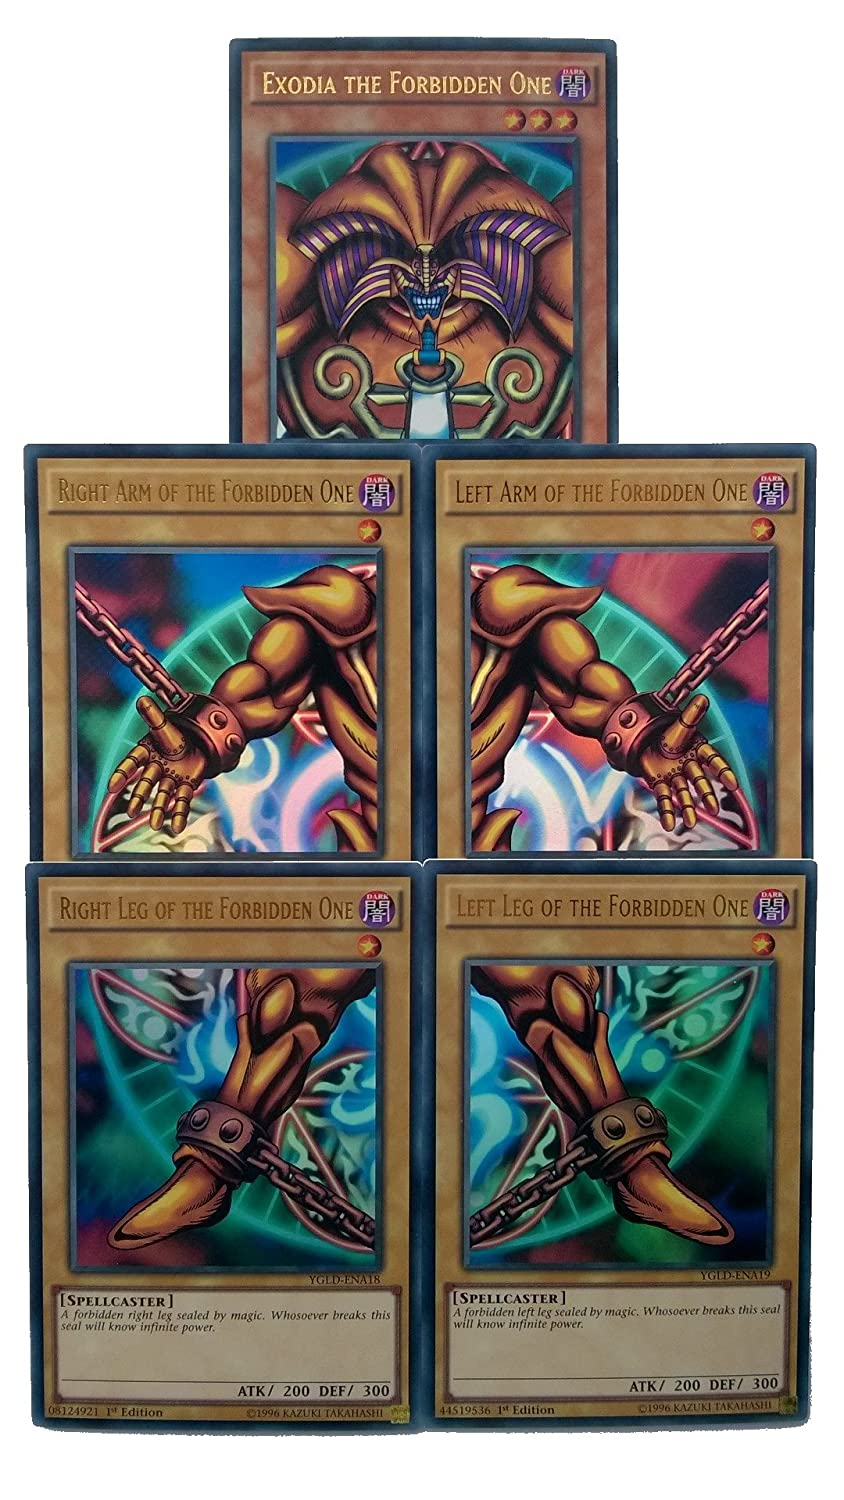 Yu-Gi-Oh! Exodia The Forbidden One - Complete Five Card Set ...